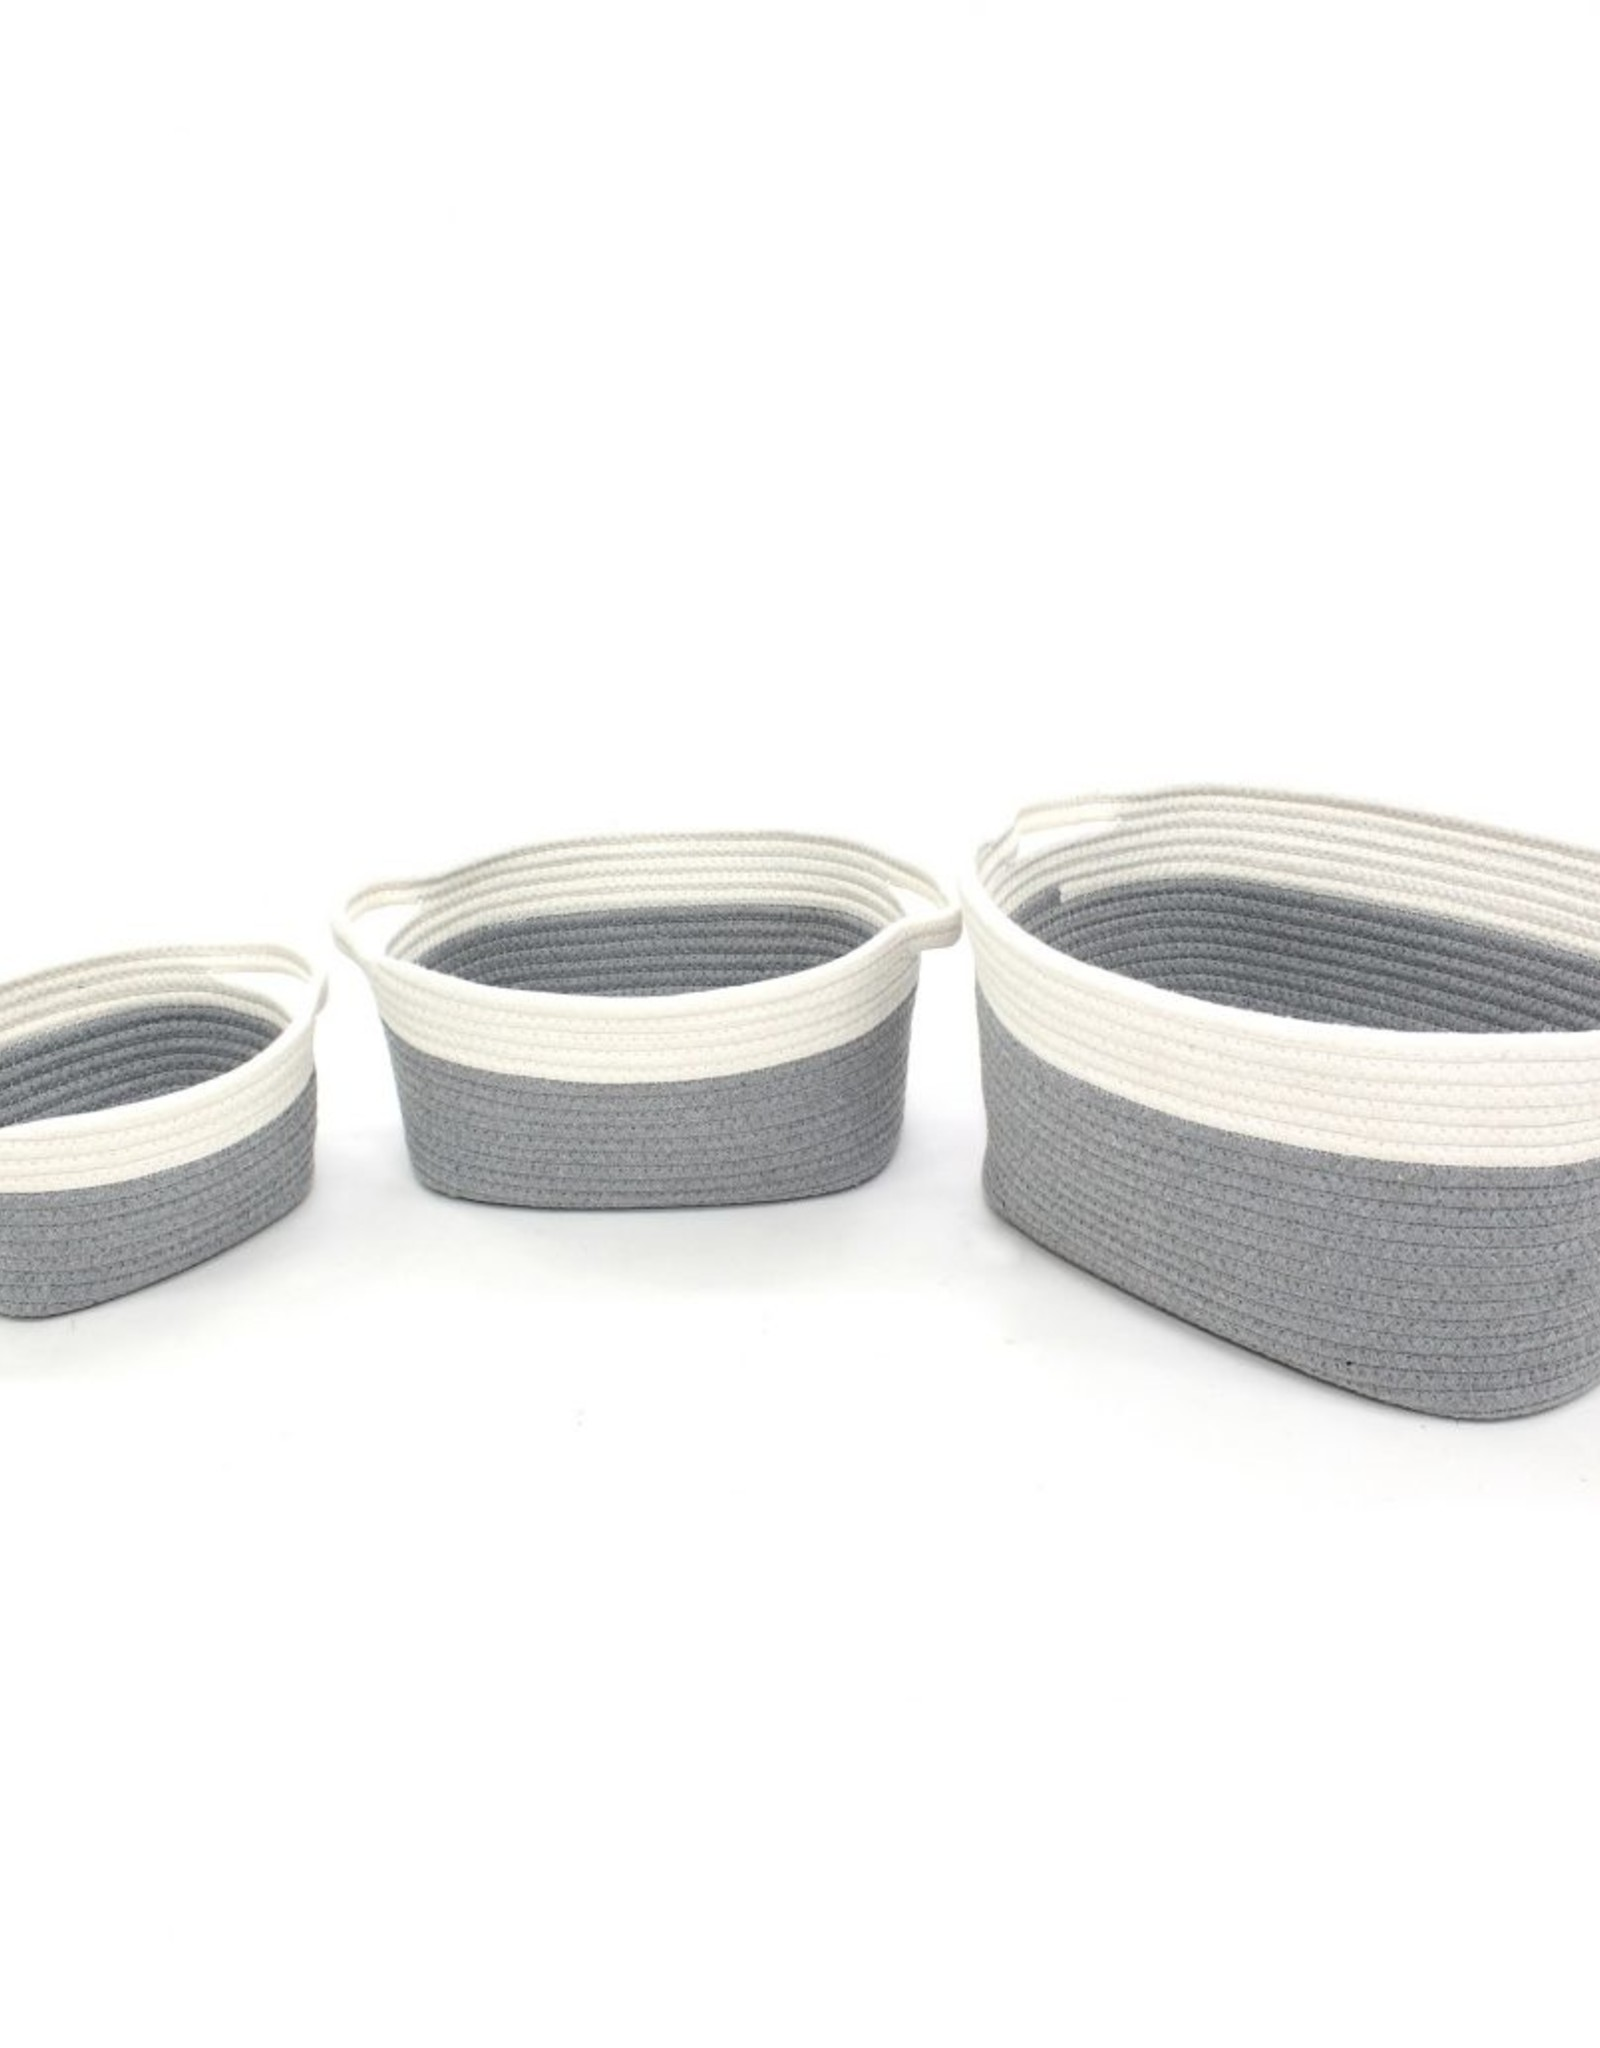 "Cathay Basket Cathay Grey Cotton Rope Oval 12"" L 10-2506"